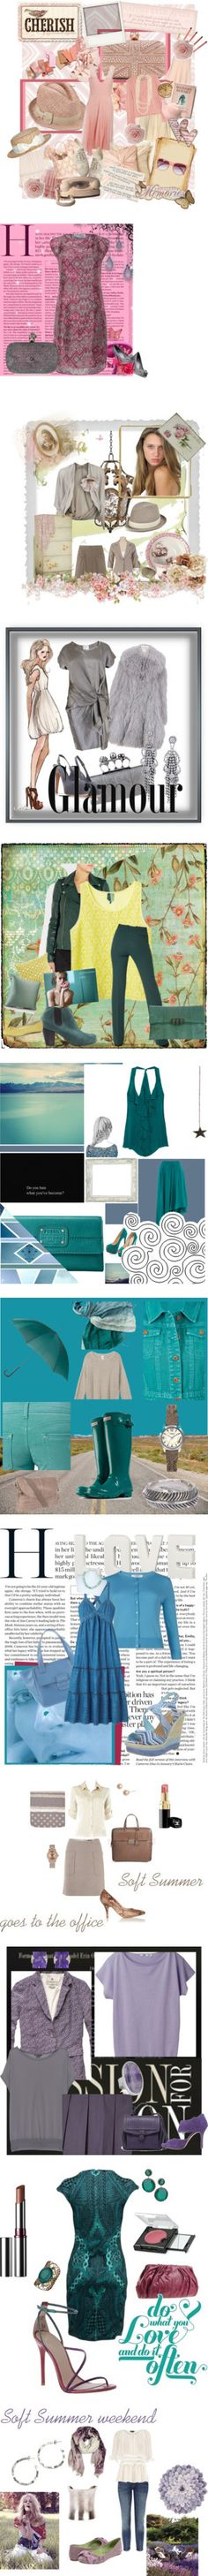 Soft Summer personal coloring, vol. I by in-vero-pulcritudo on Polyvore featuring ...Lost, Disney Couture, Nordstrom, Juicy Couture, Pixie, Anna Sui, H&M, Forever 21, Oasis and Sisley Paris